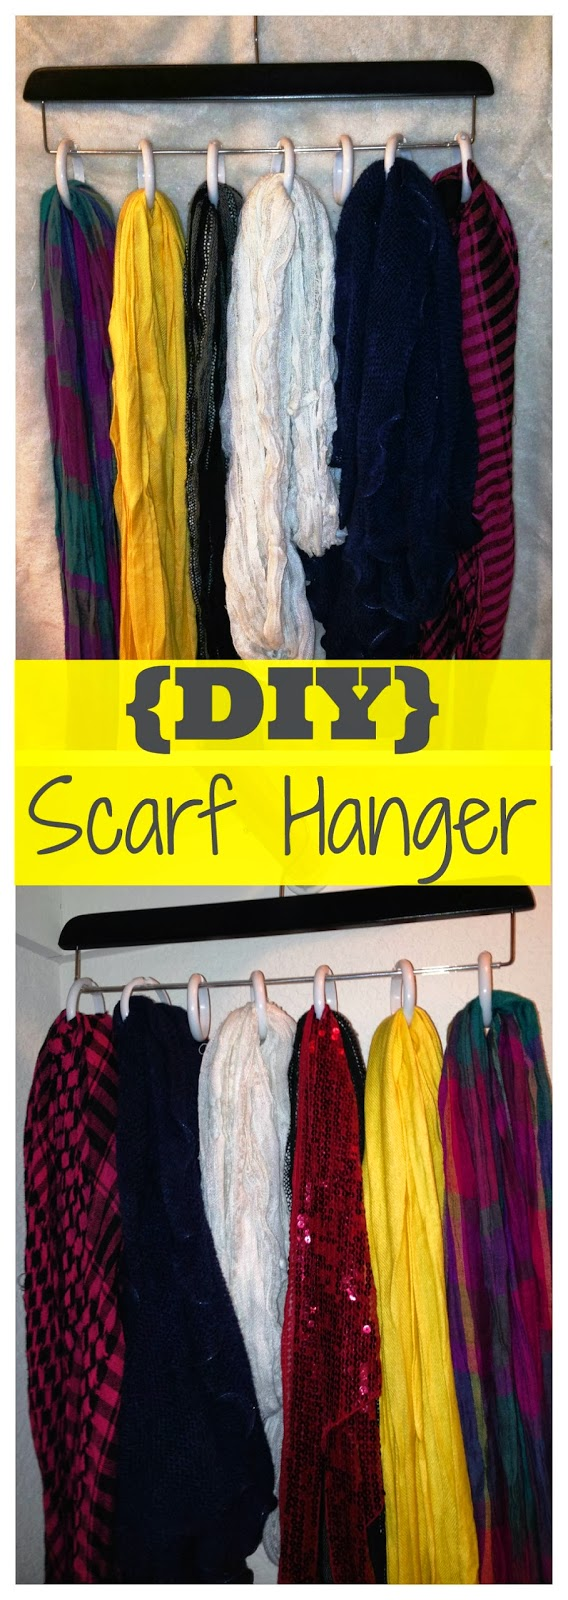 The Everyday Momma: Quick & Simple DIY Projects: Scarf Hanger ...